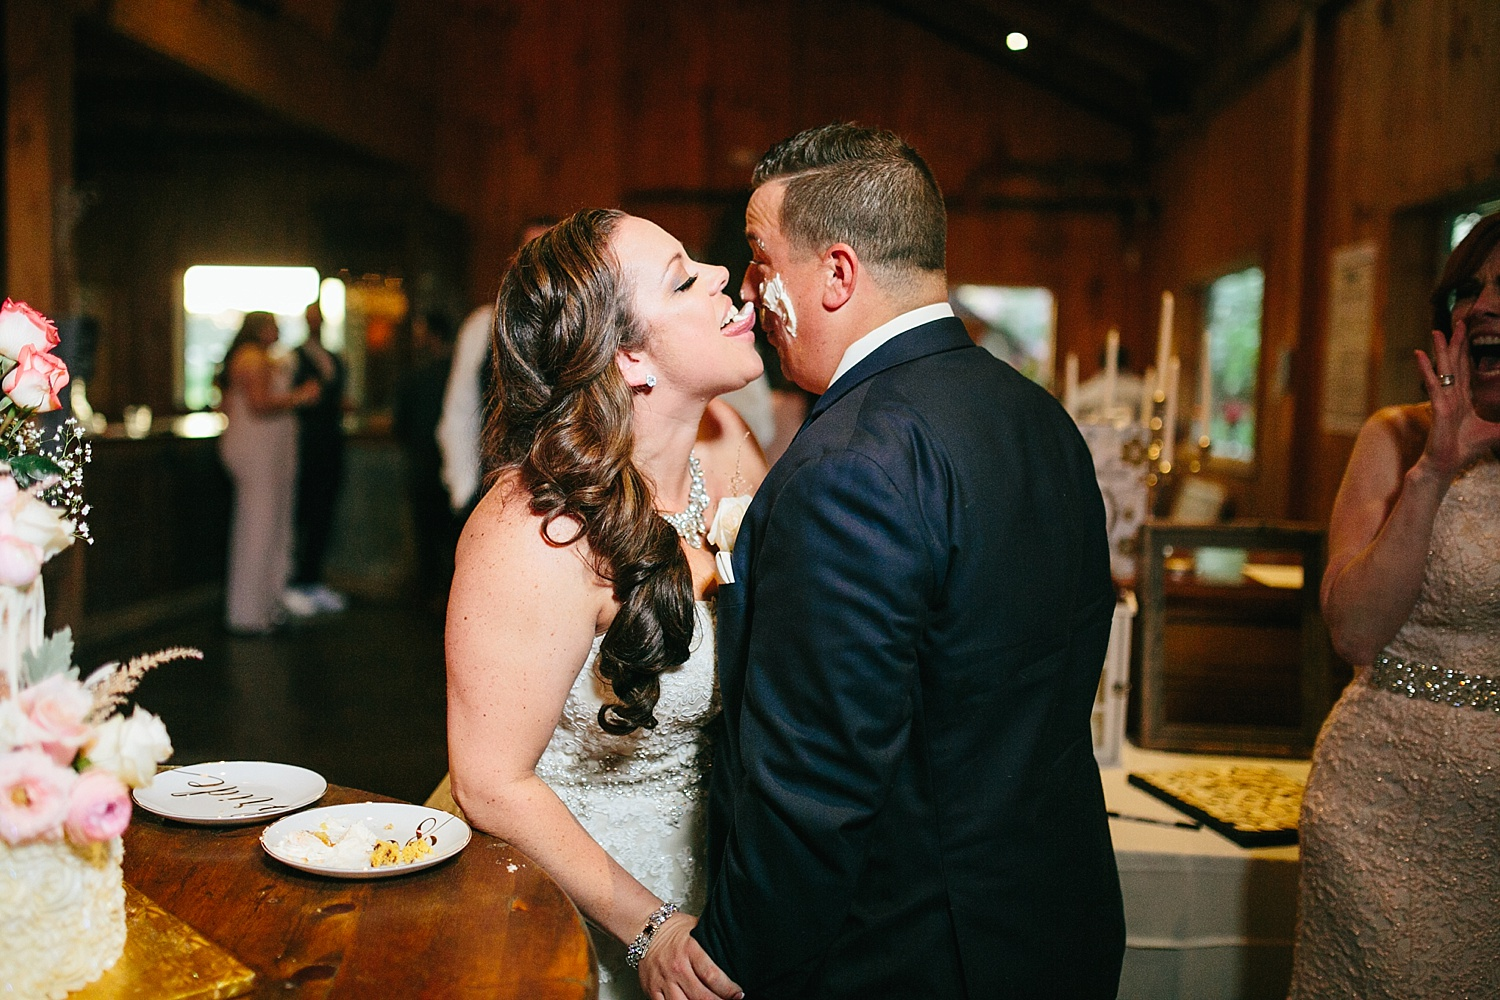 kellishawn_rosebankwinery_newtown_buckscounty_summer_wedding_image066.jpg